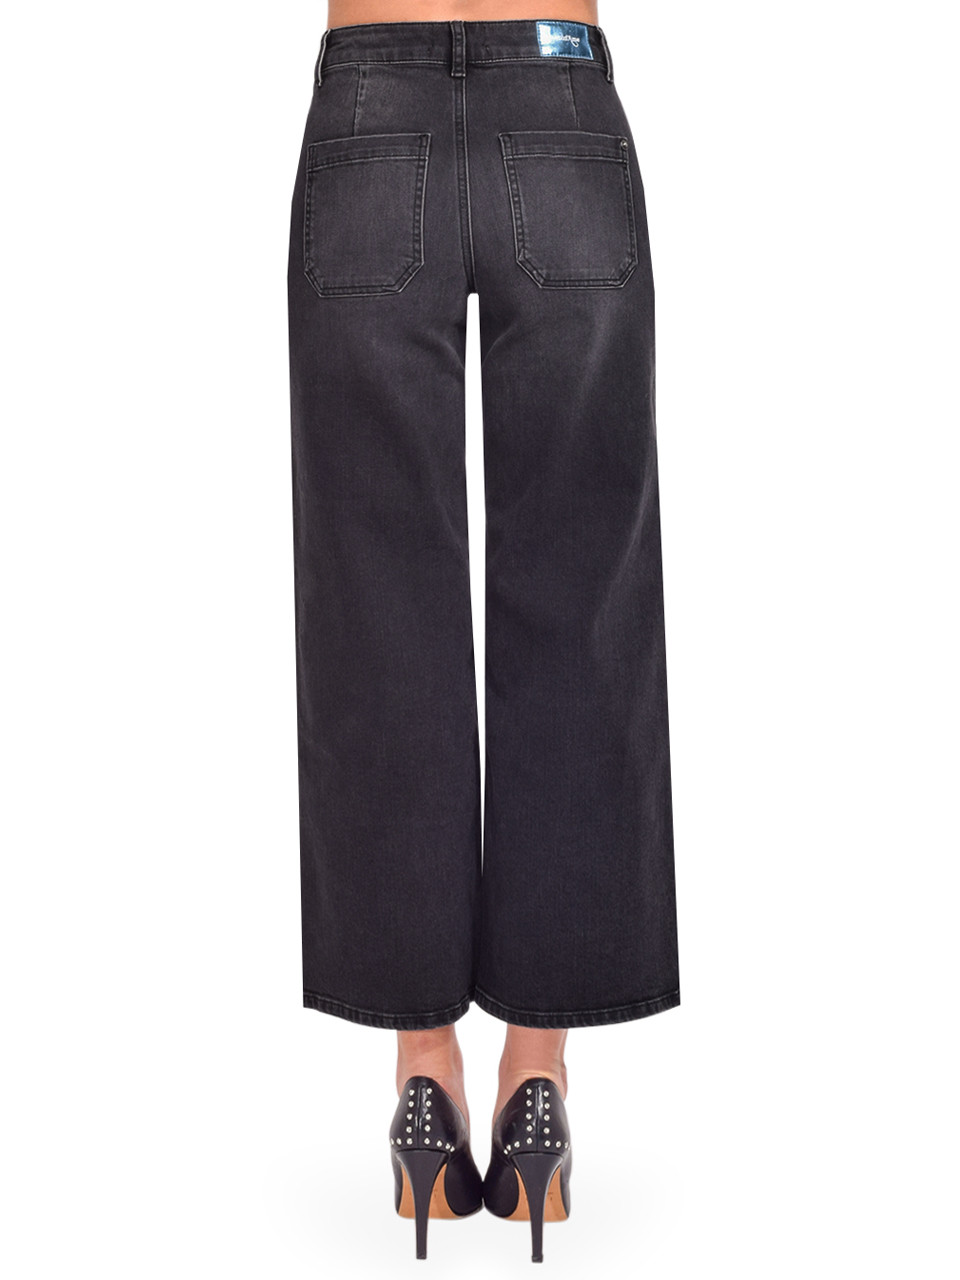 Ottod'Ame Cropped French Jeans in Black Back View